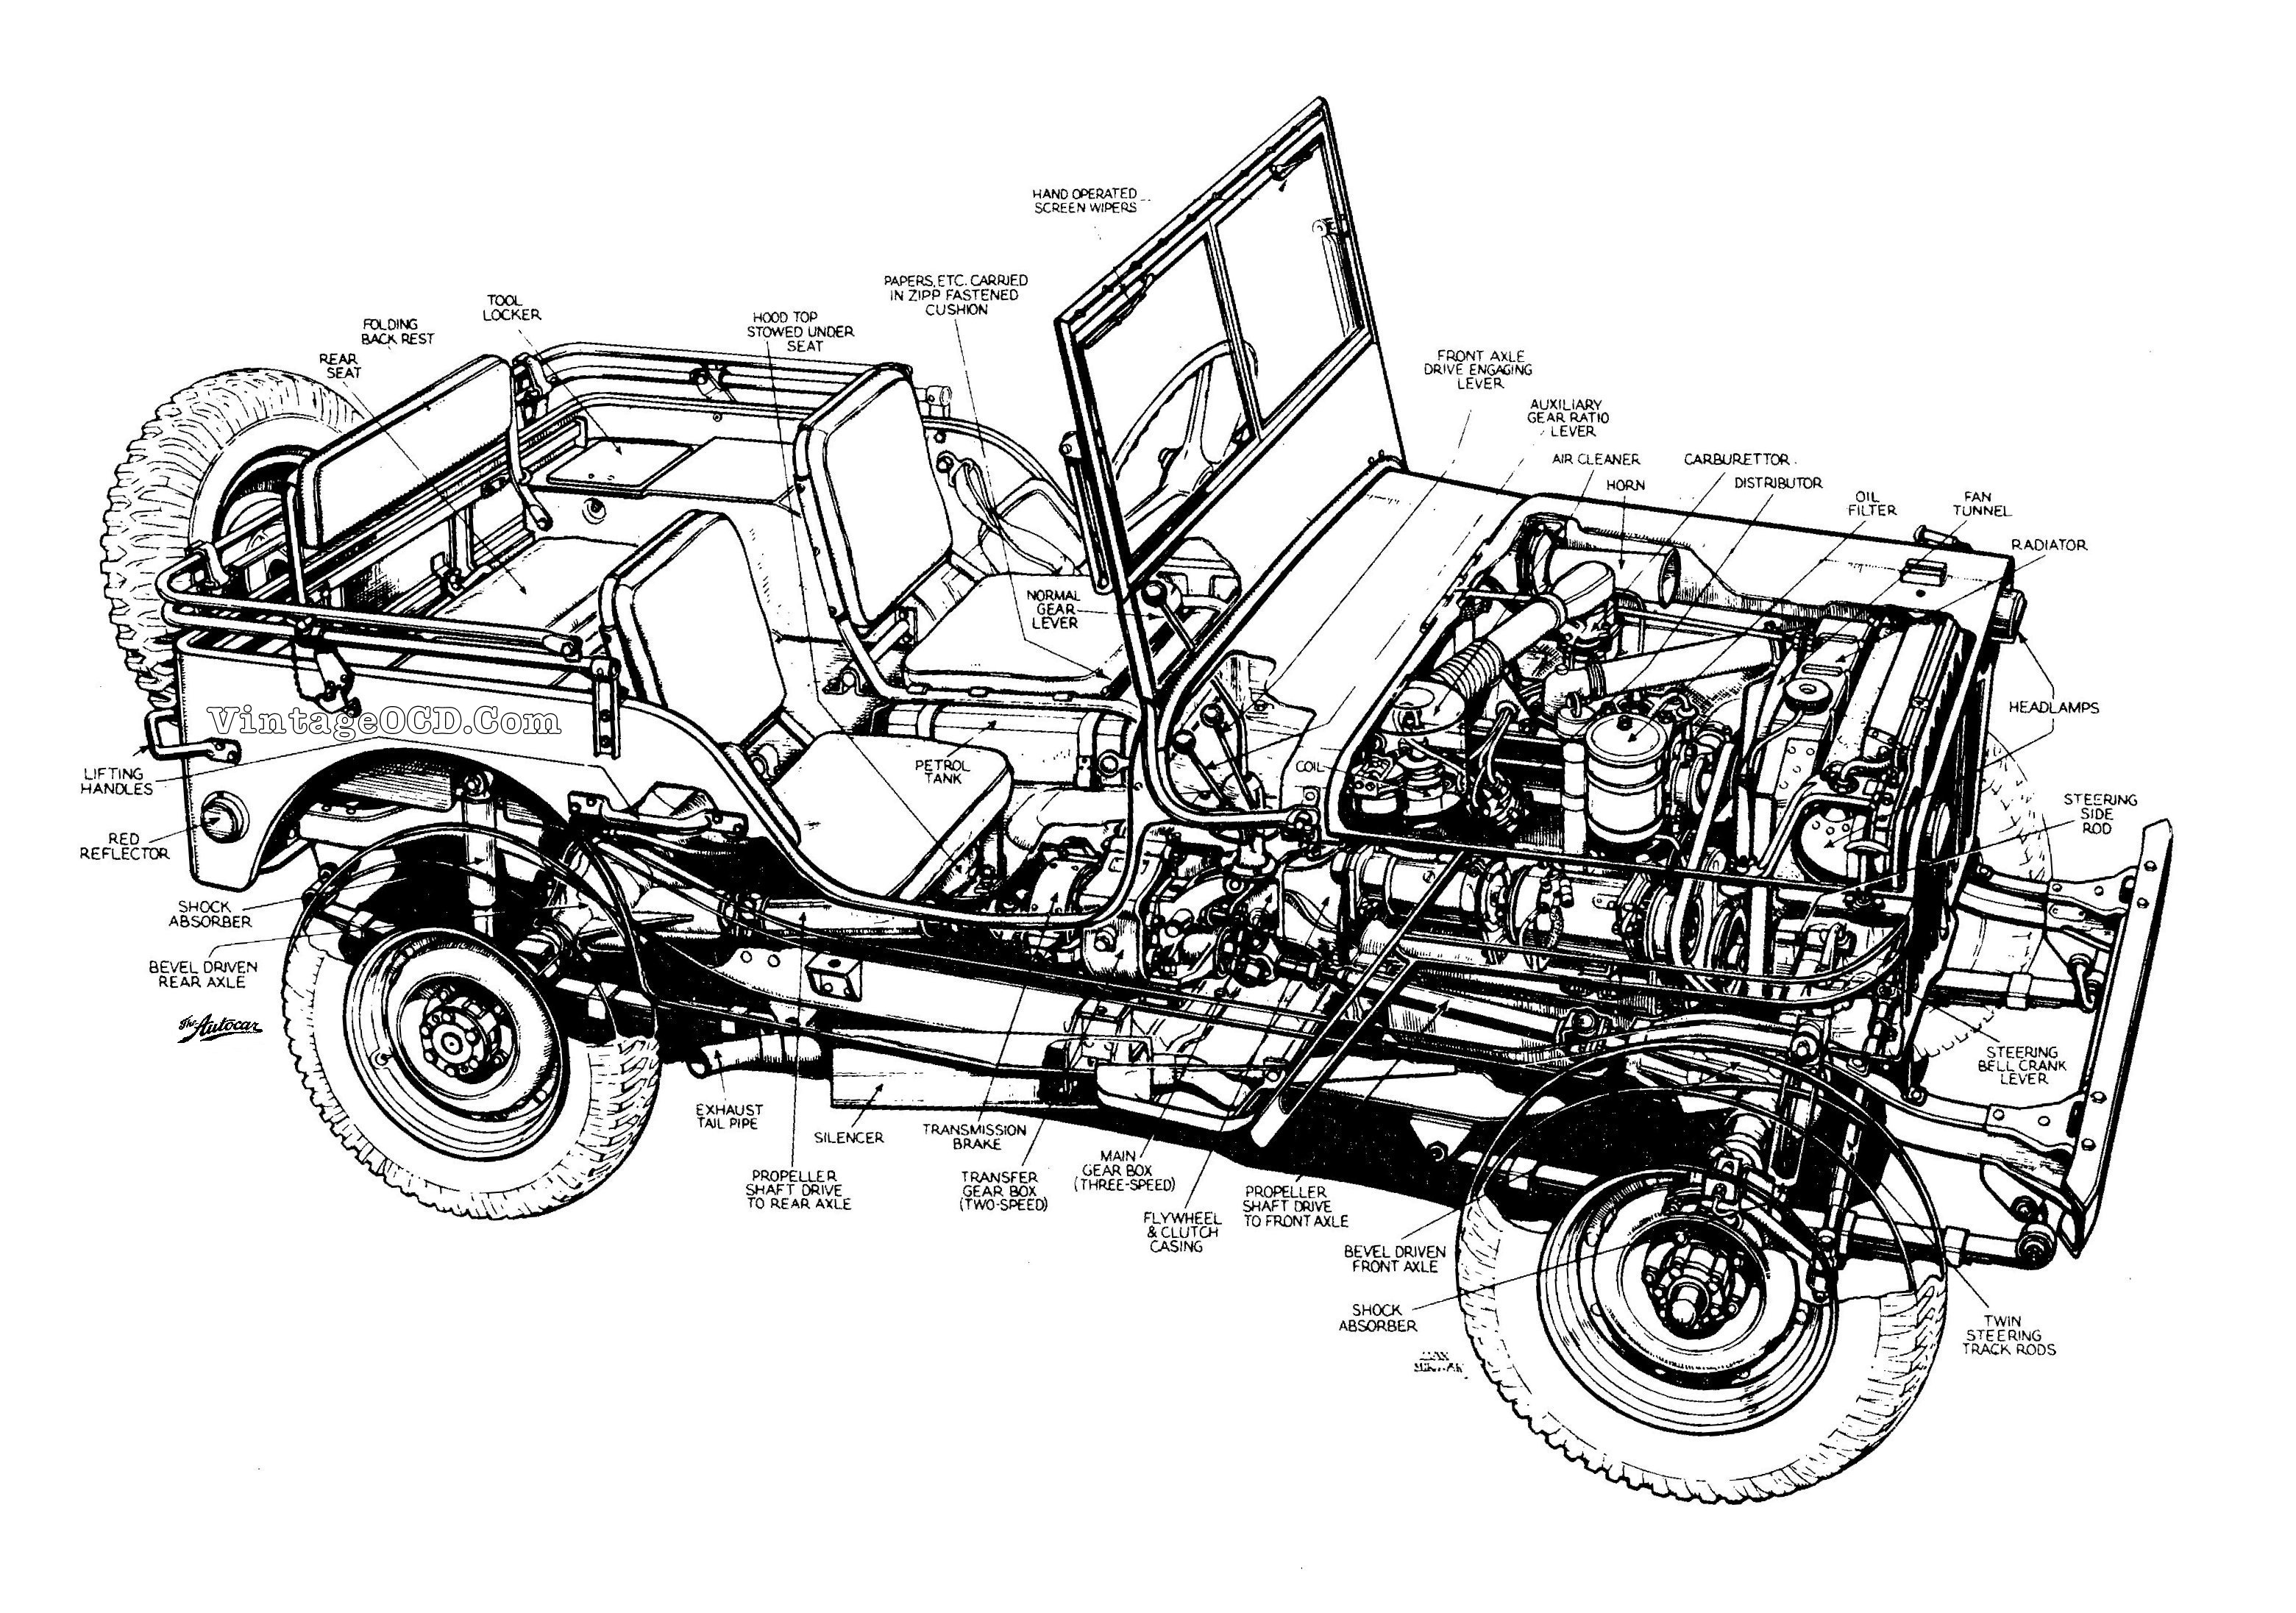 willys jeep diagram ocd willy's jeep cut away photo vintage ocd willys jeep wiring harness at nearapp.co